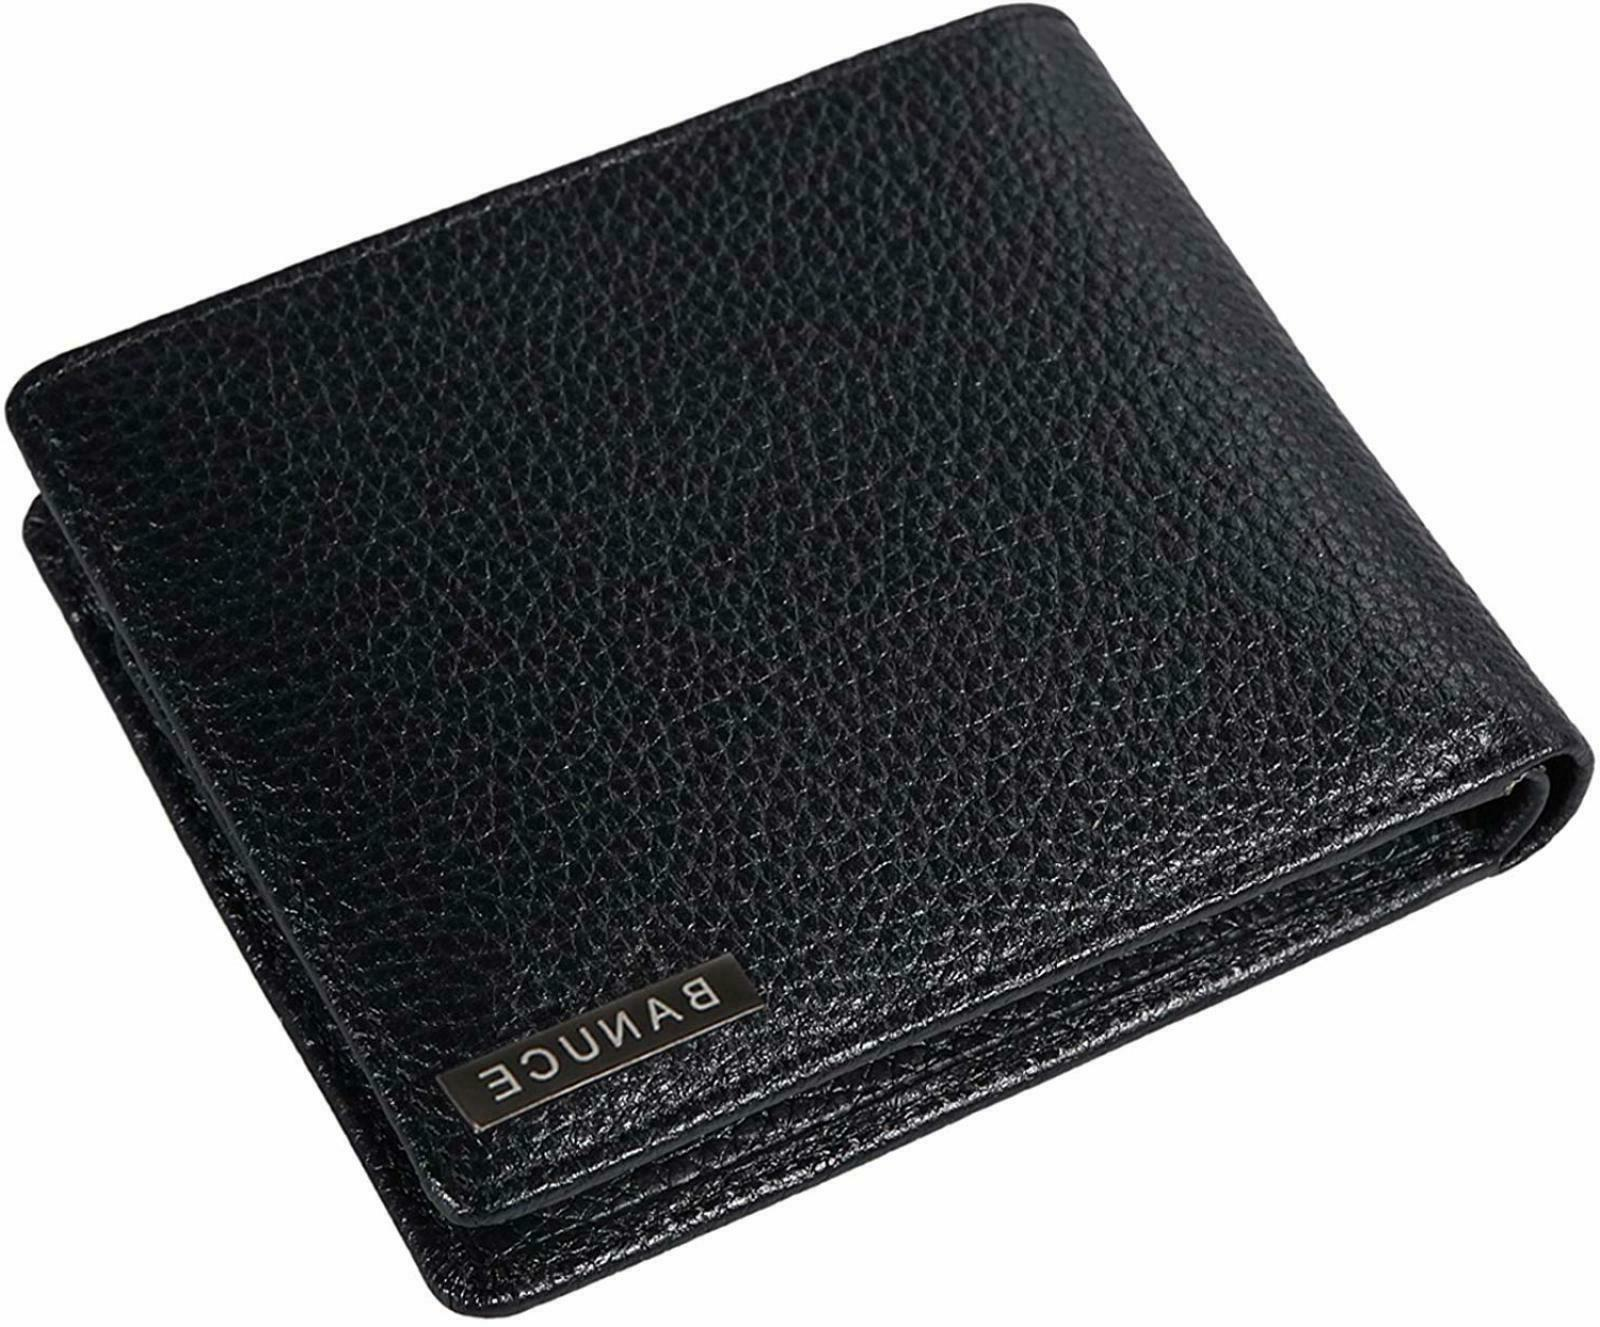 Banuce Leather Bifold Wallet for Men Large Capacity Purse ID